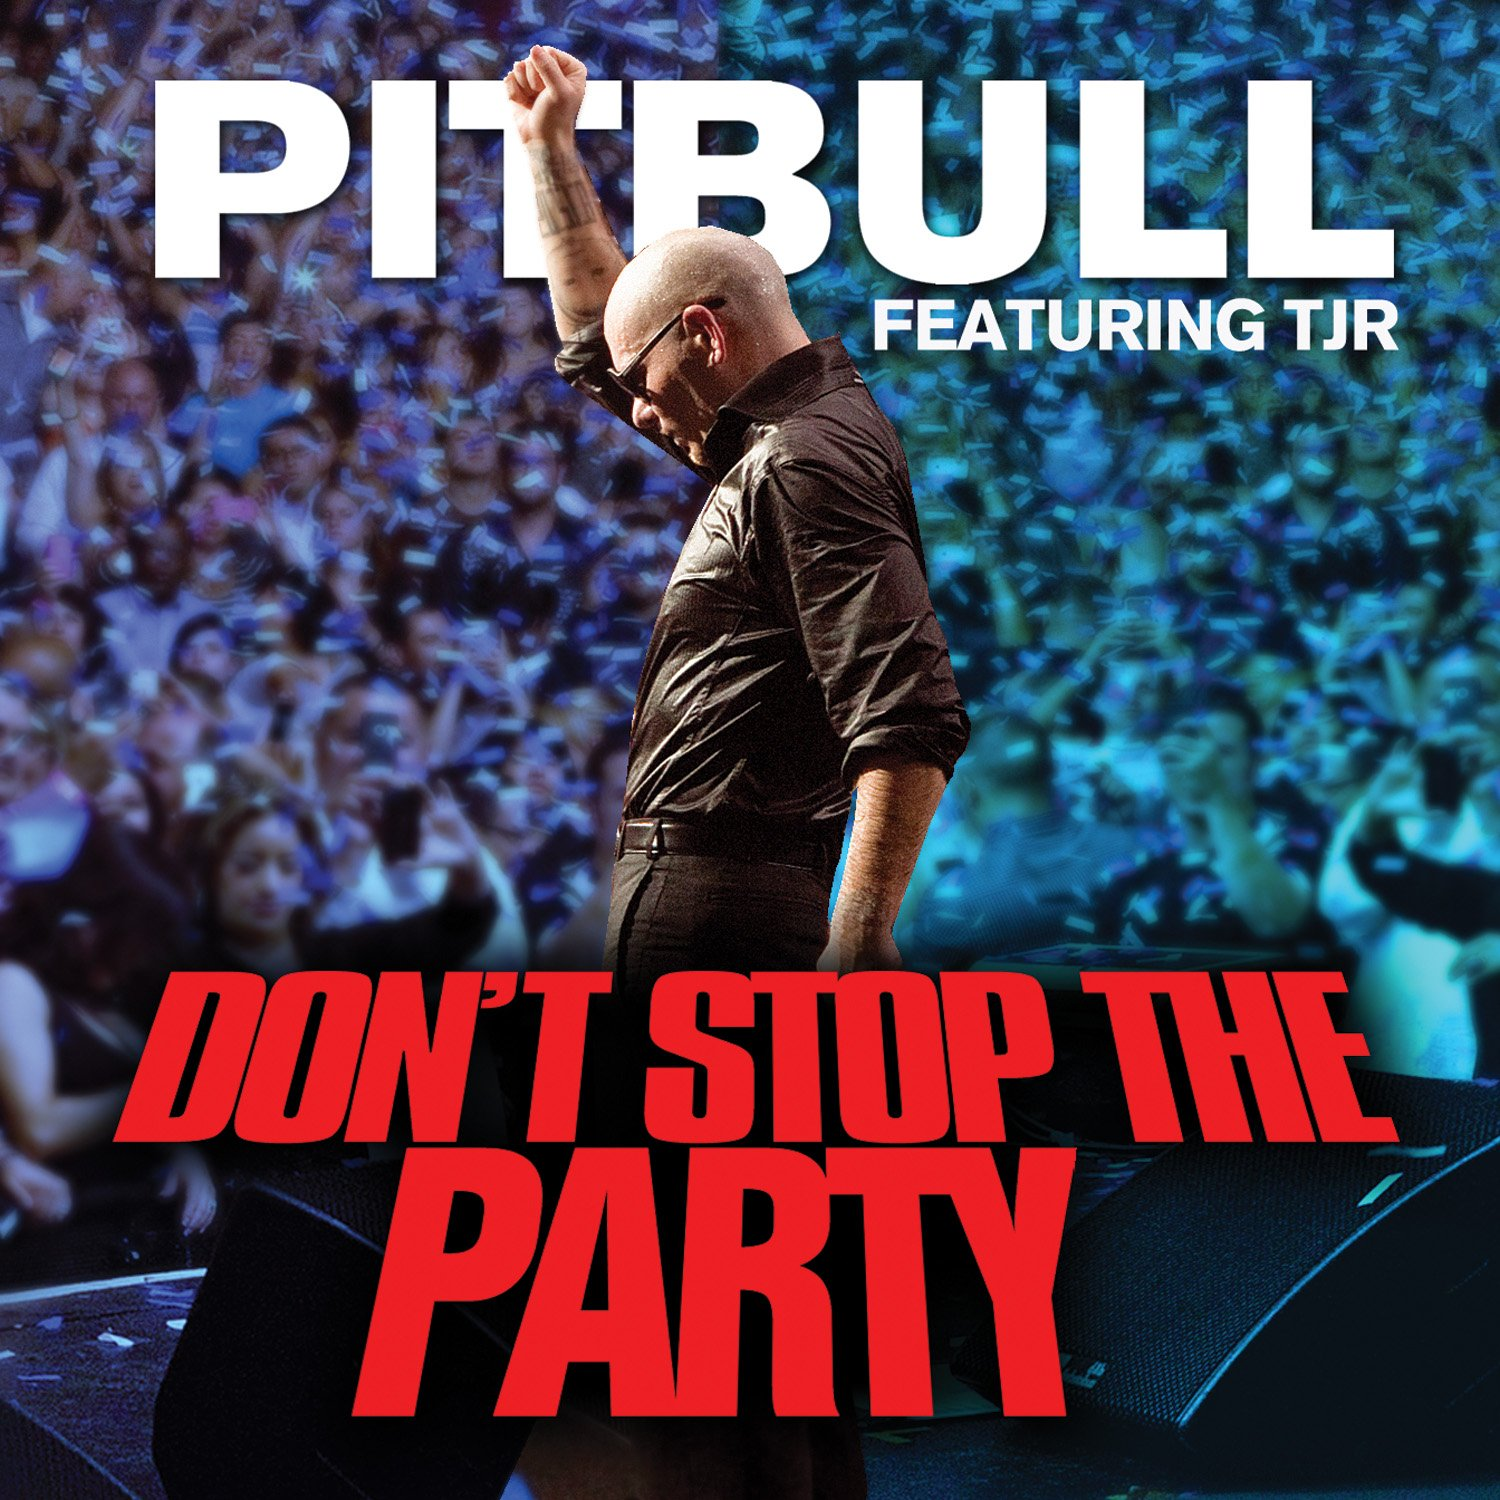 Free mp3 download (pitbull ft. Tjr don't stop the party) youtube.